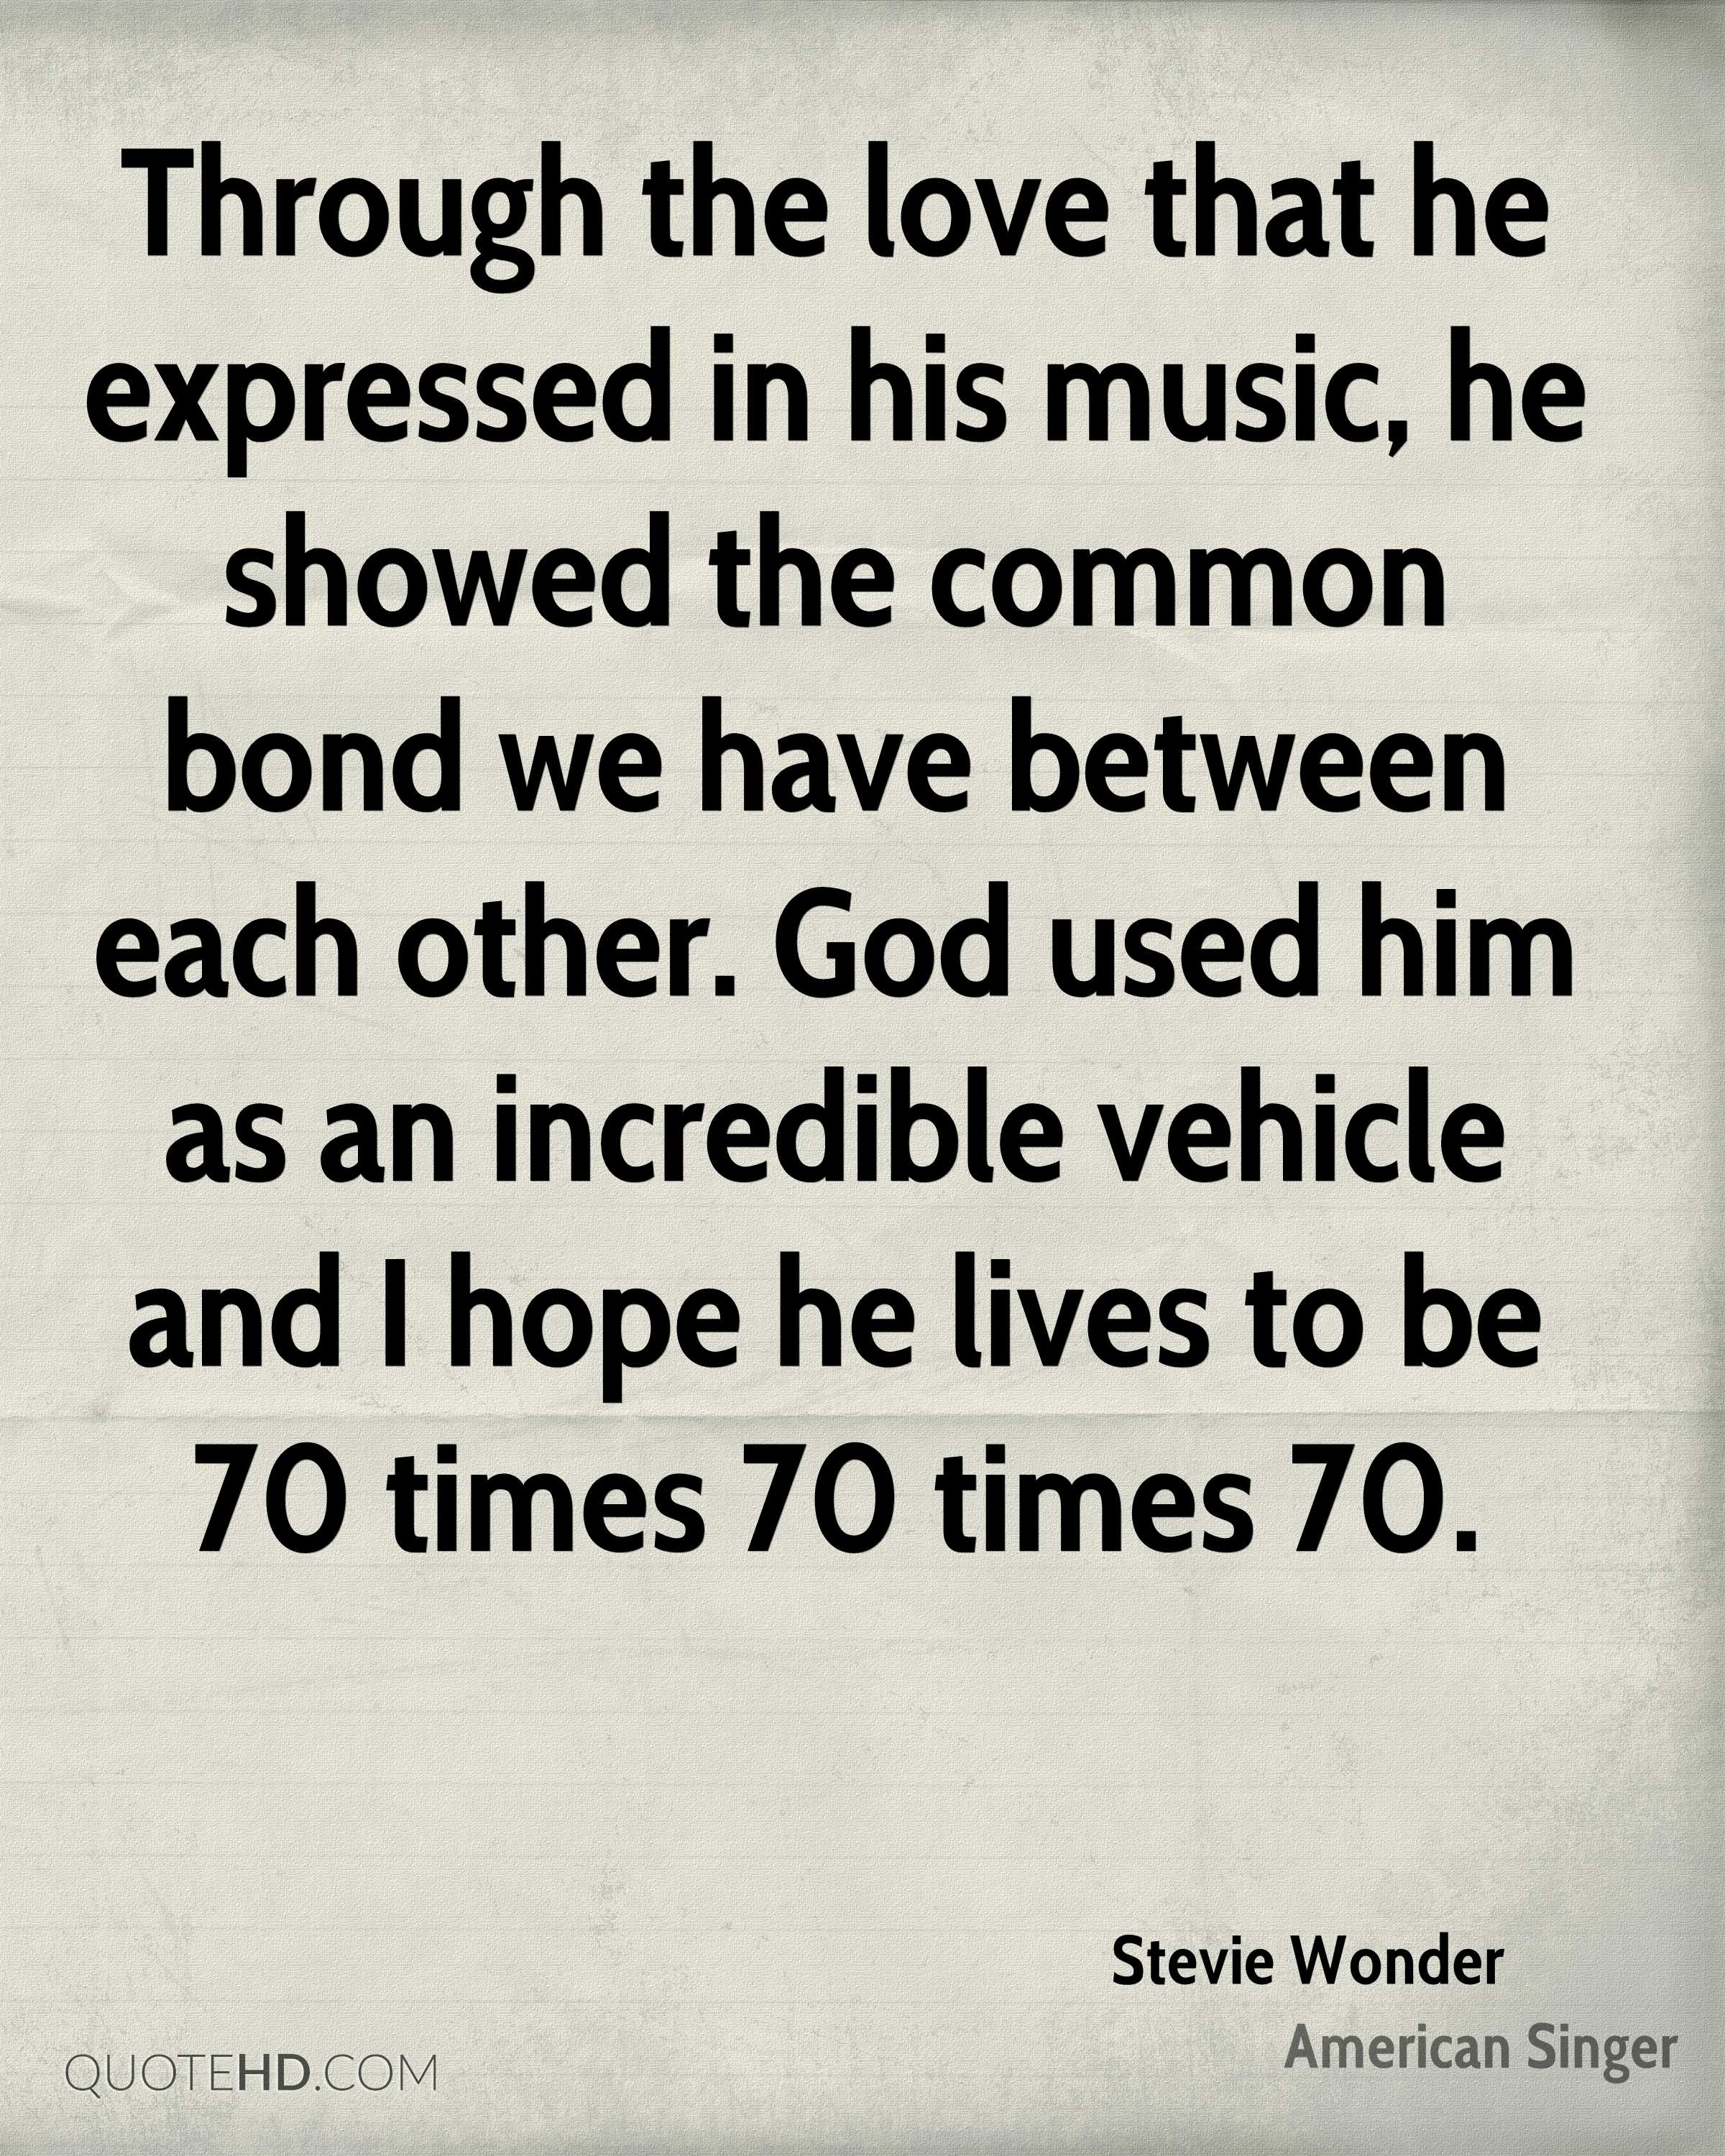 Through the love that he expressed in his music, he showed the common bond we have between each other. God used him as an incredible vehicle and I hope he lives to be 70 times 70 times 70.